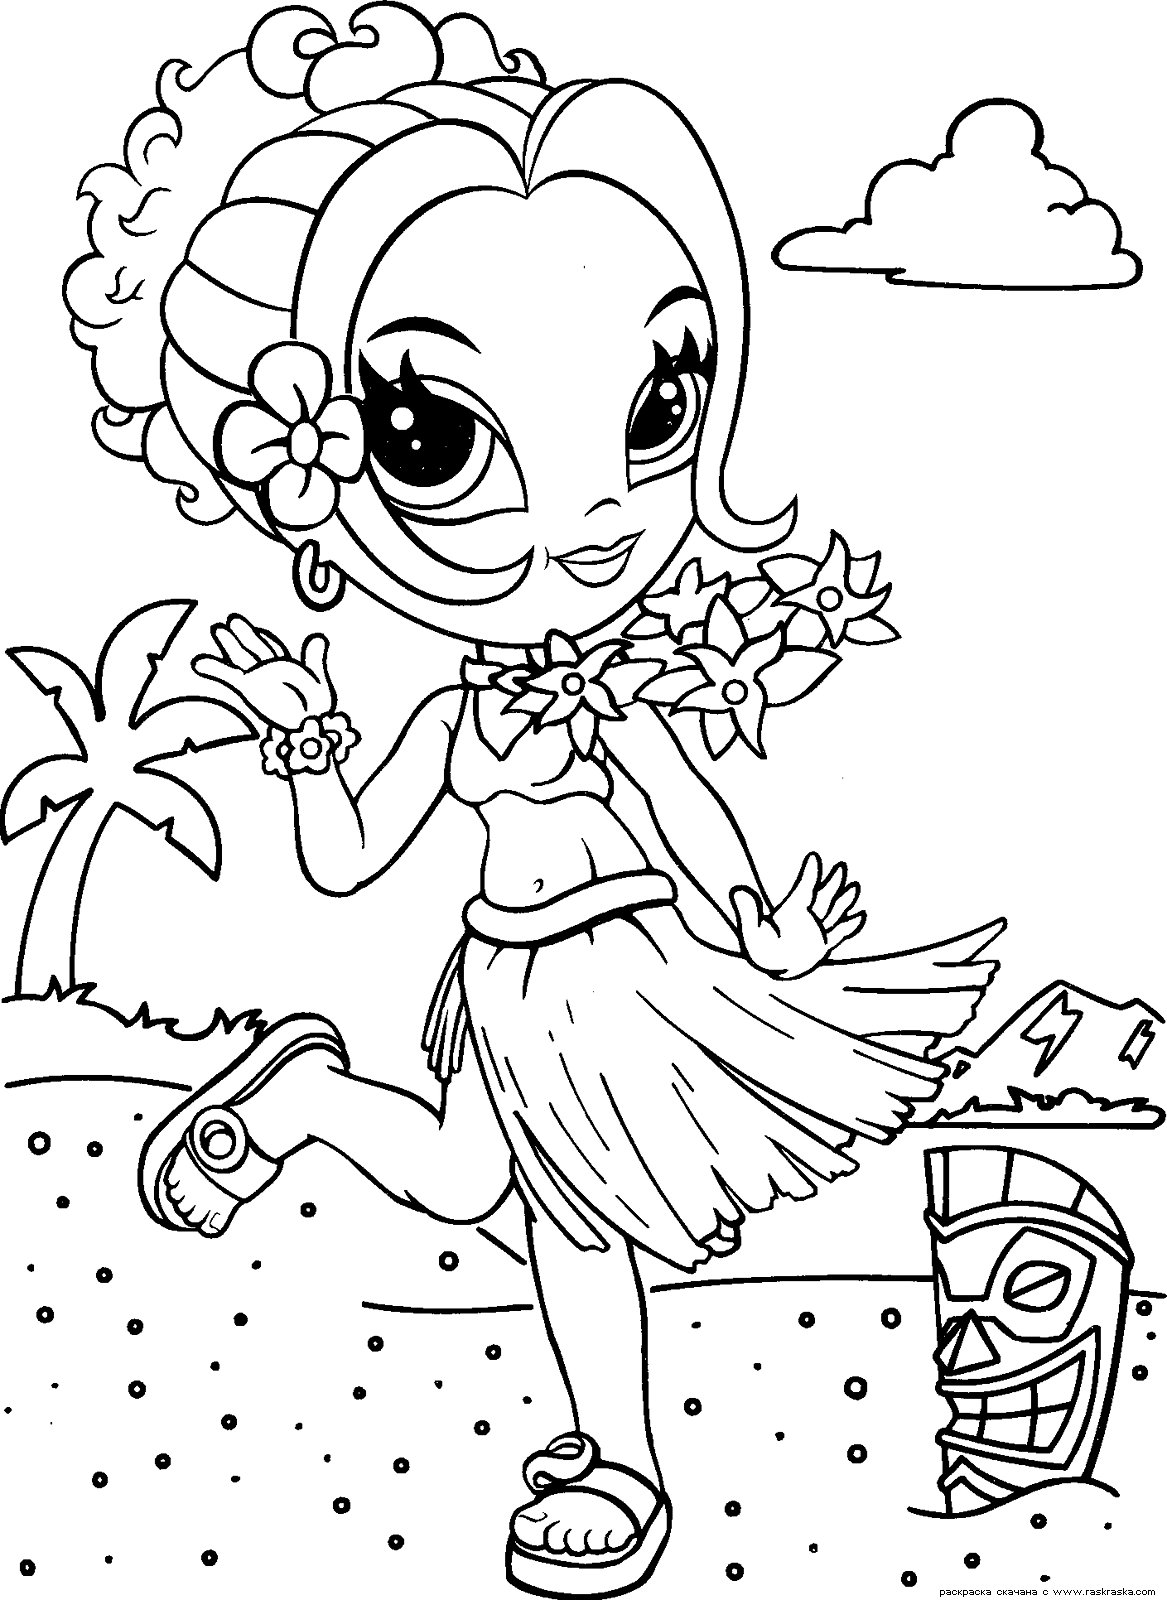 - 15 Lisa Frank Coloring Page - Print Color Craft Print Color Craft